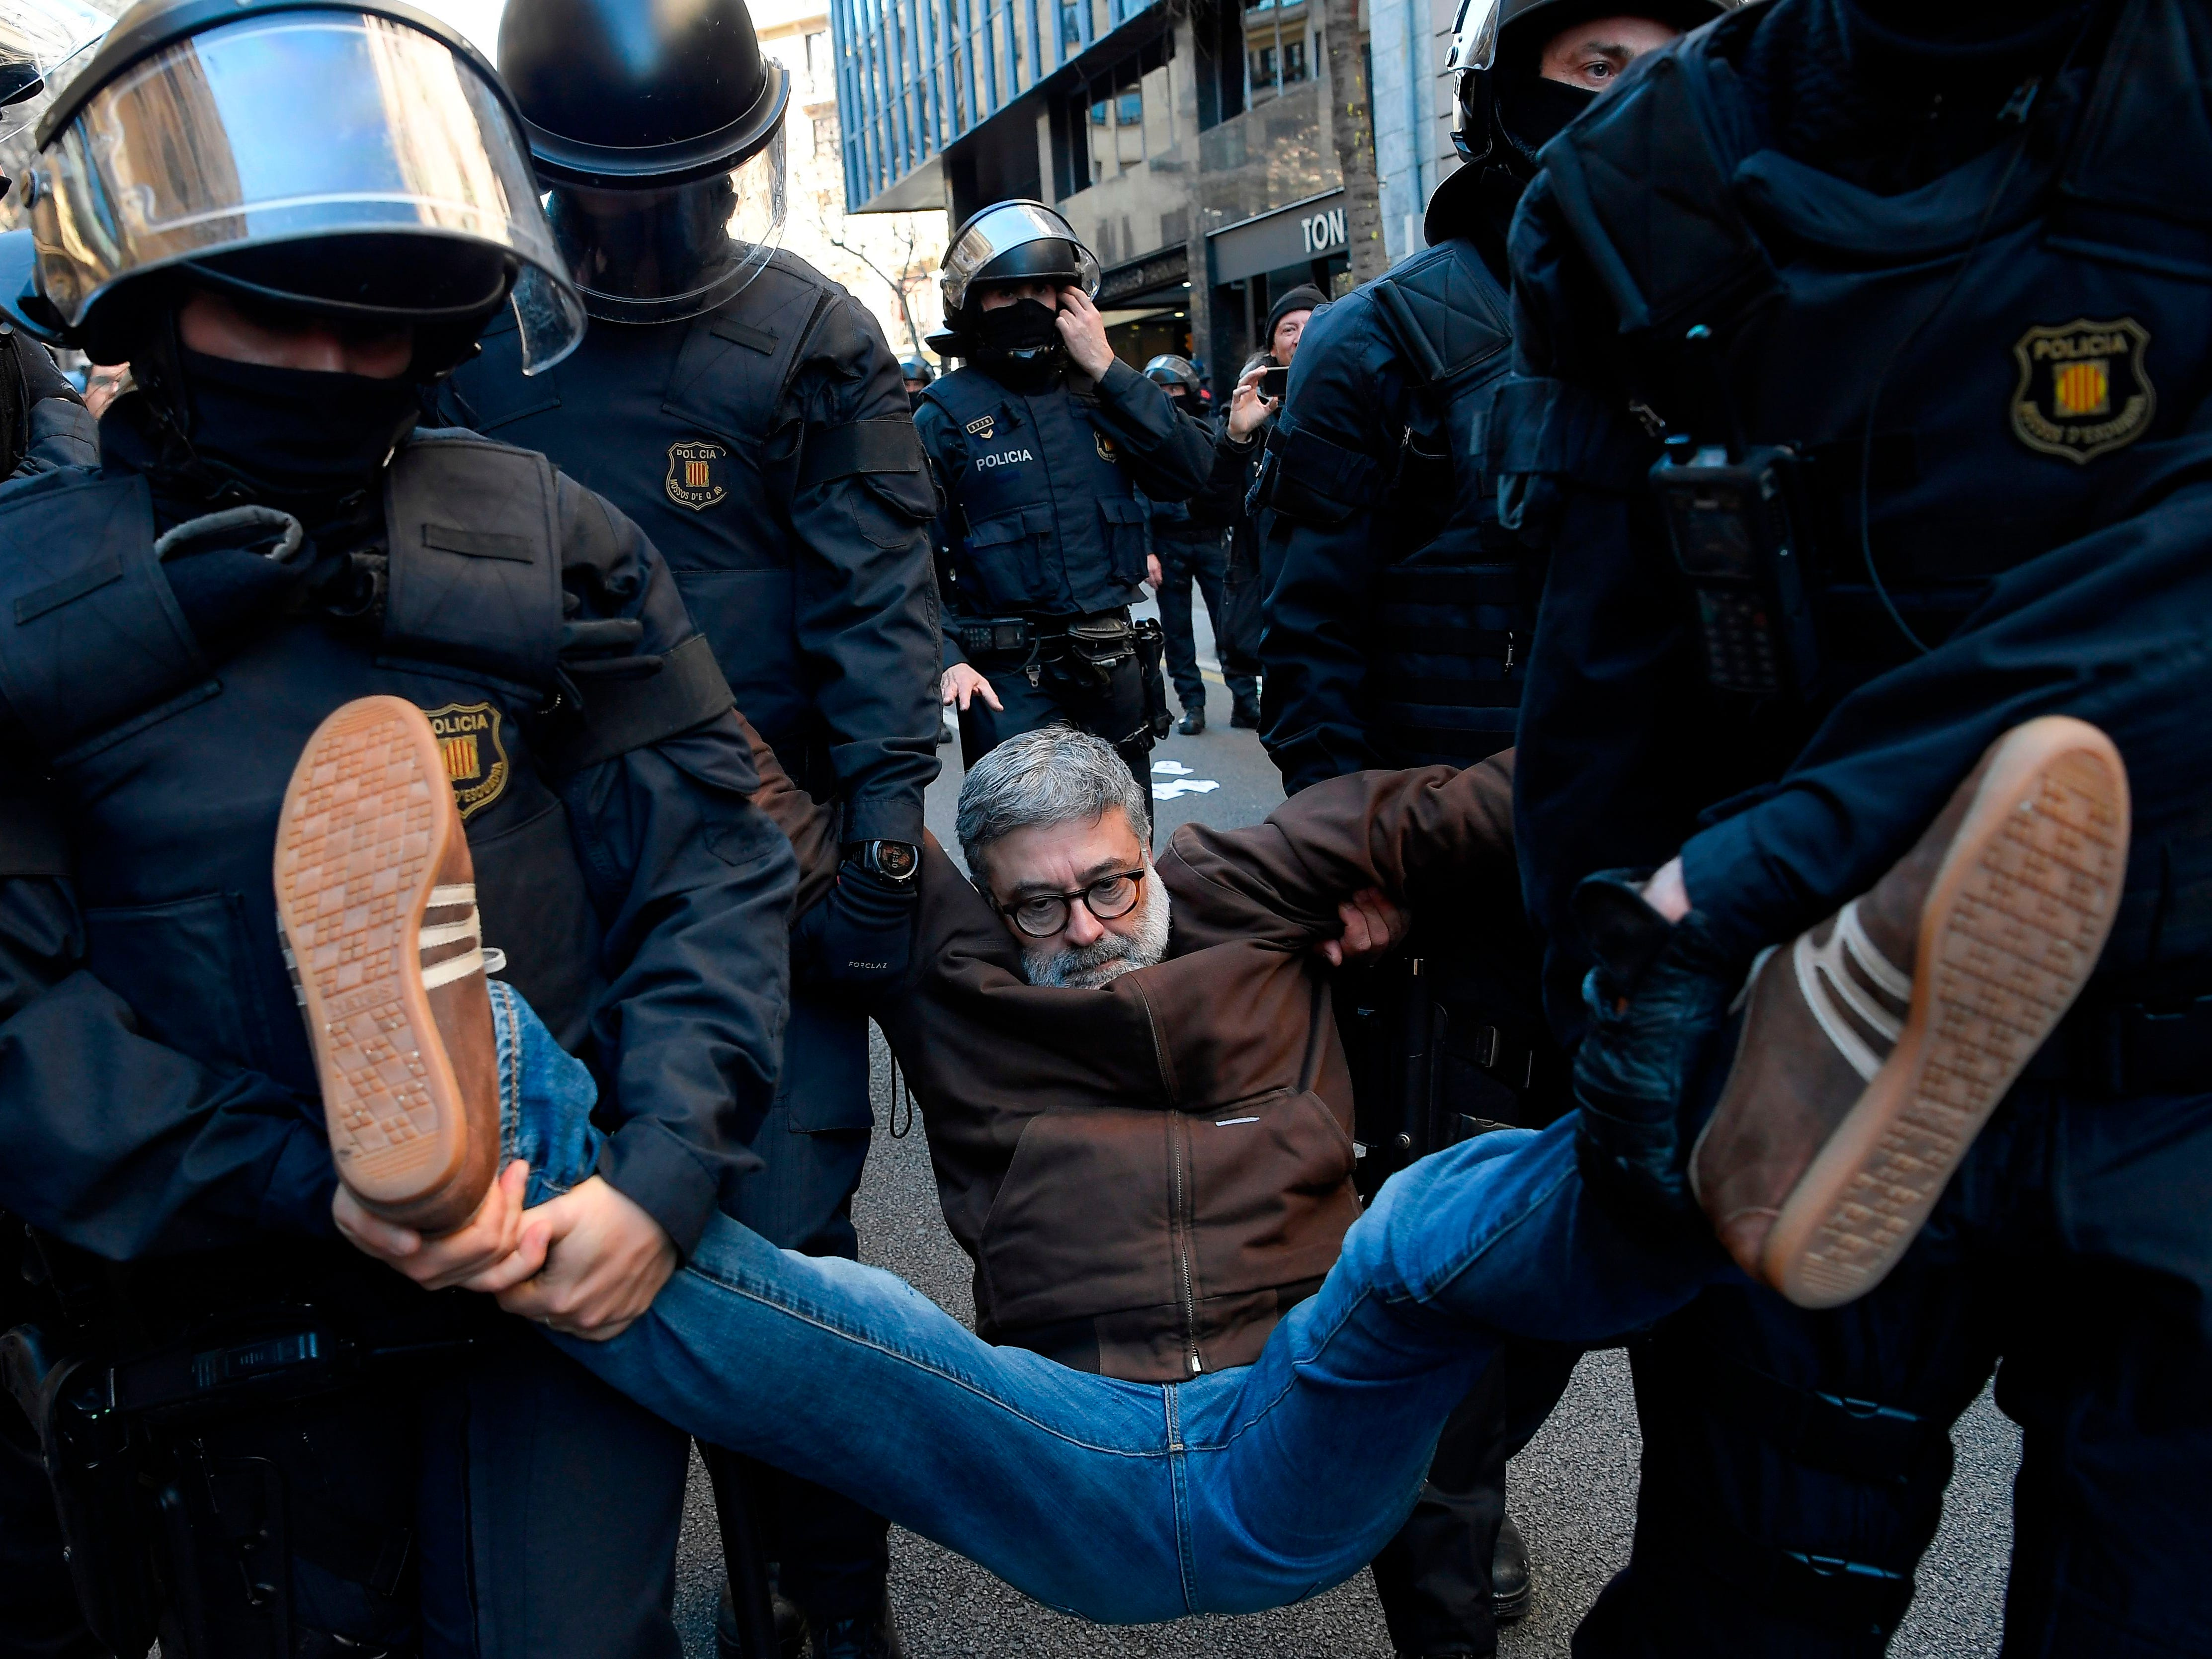 Catalan regional police forces Mossos d'Esquadra carry Catalan regional MP Carles Riera of the Candidatura d'Unitat Popular - CUP (Popular Unity Candidacy) after he joined demonstrators blocking a street in Barcelona to protest against the trial of former Catalan separatist leaders on Feb. 12, 2019. Twelve former Catalan leaders go on trial at Spain's Supreme Court for their role in a failed 2017 bid to break away from Spain.